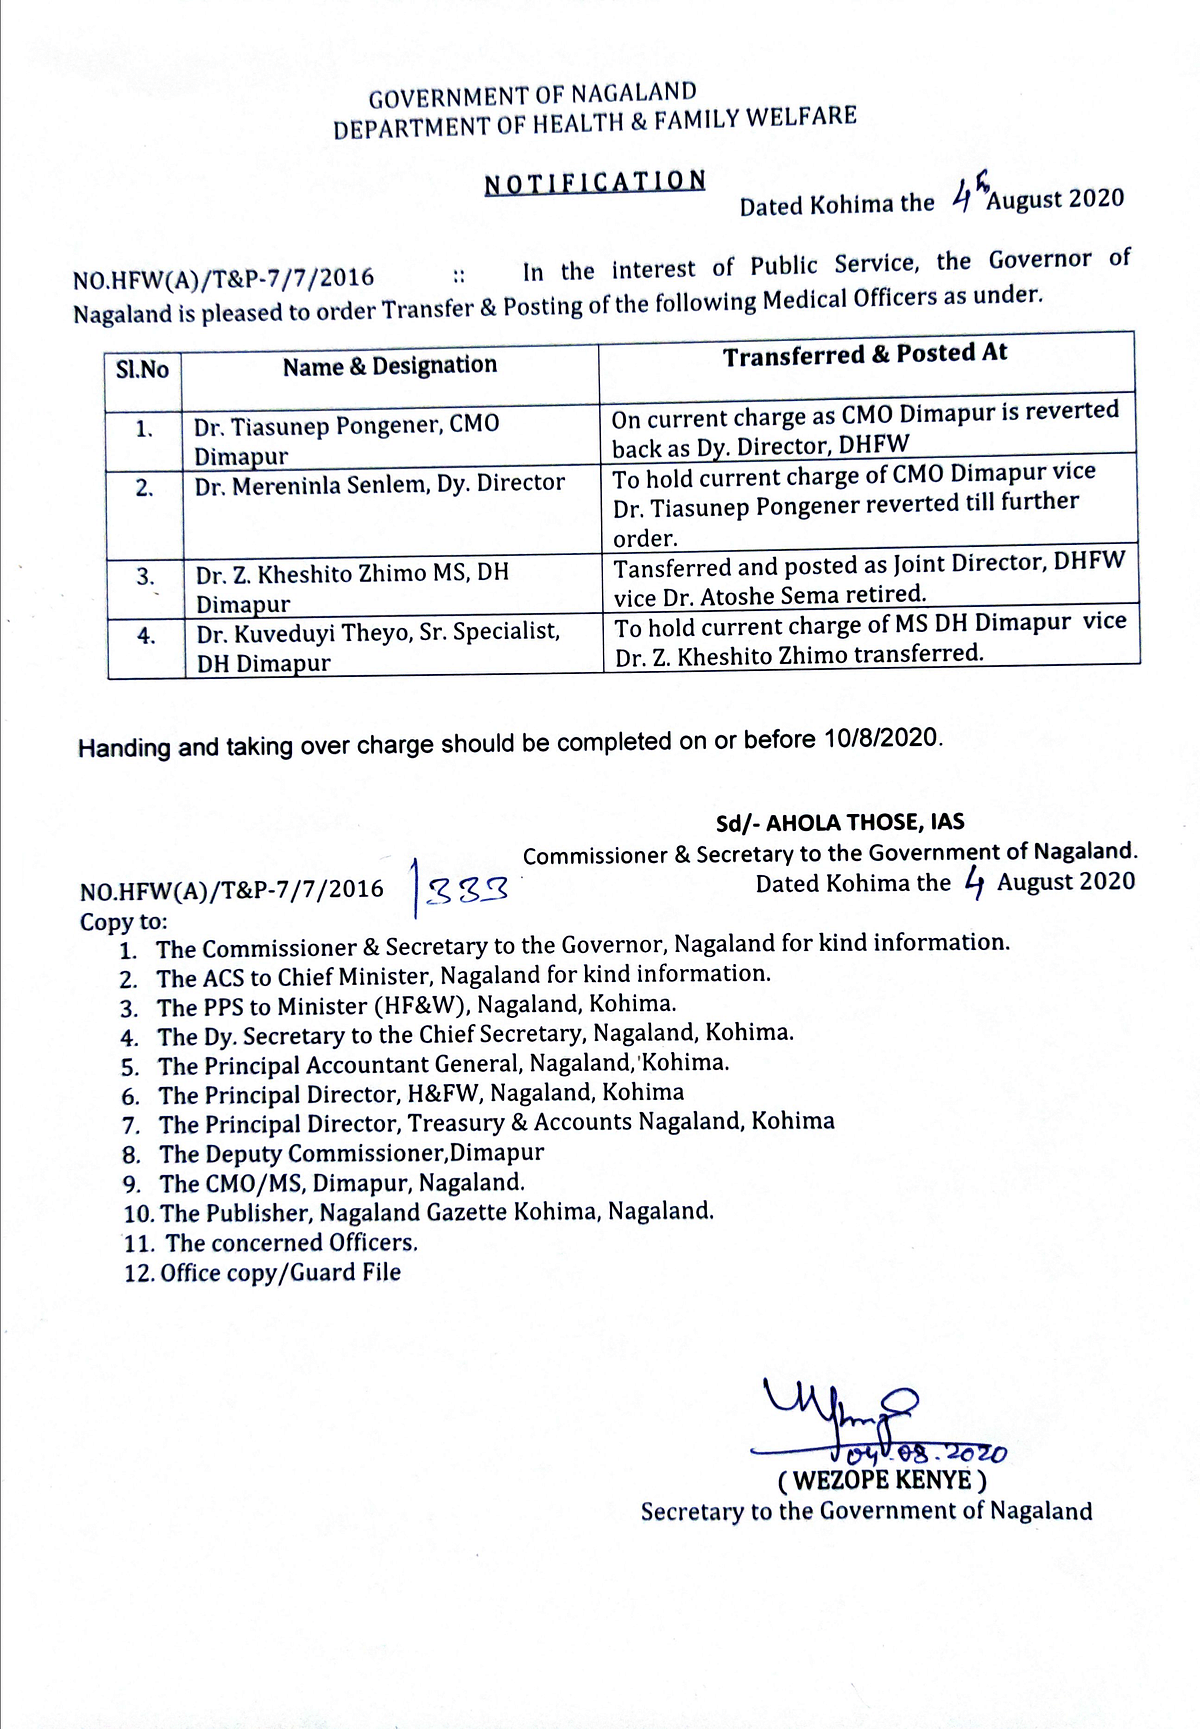 The transfer and posting notification by the department of health and family welfare on August 4